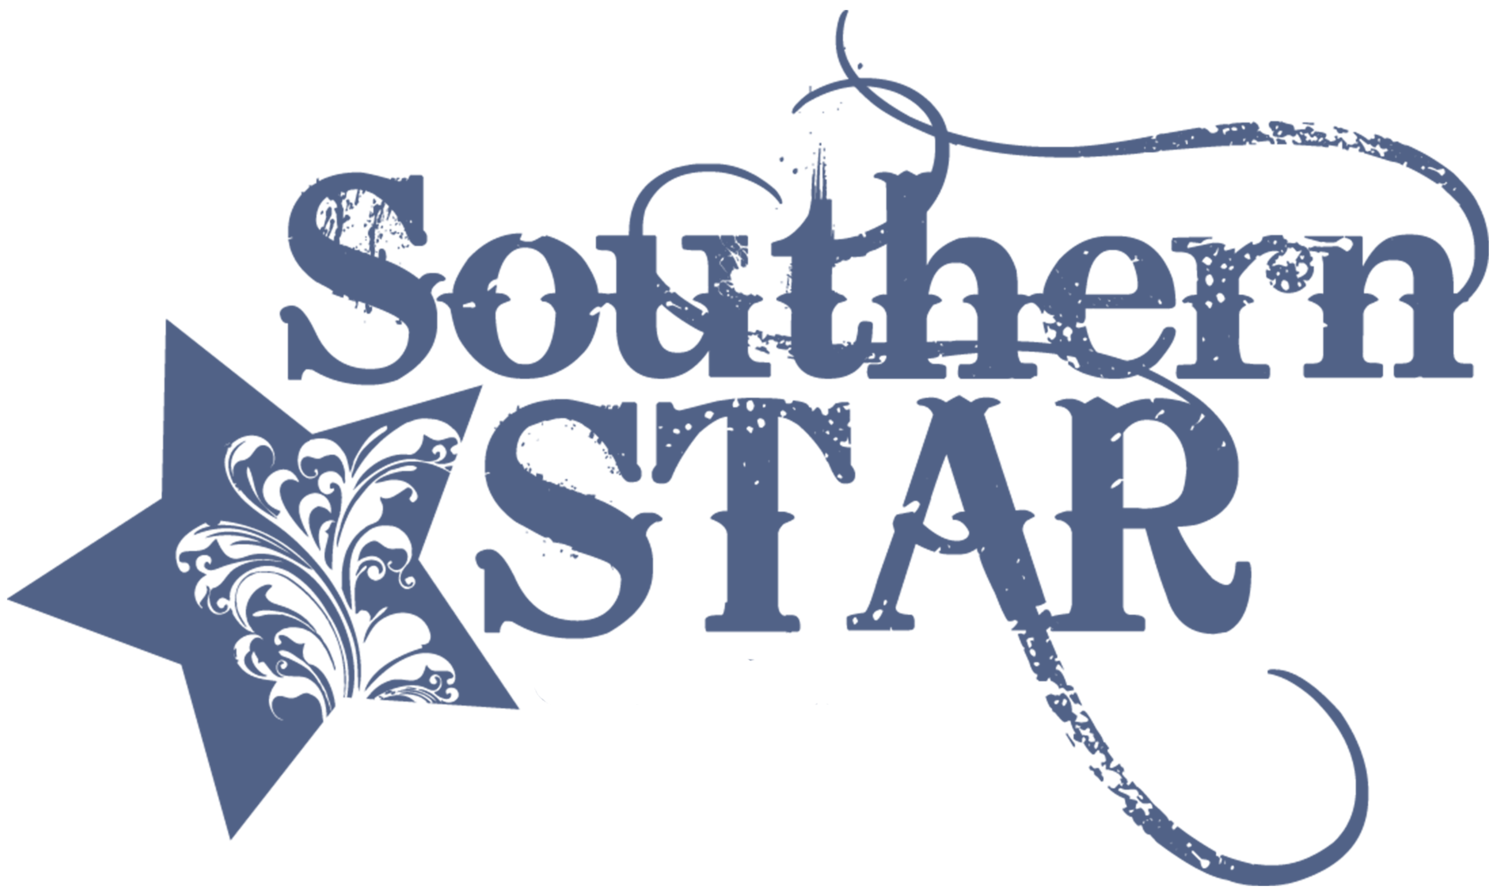 southerstar.png